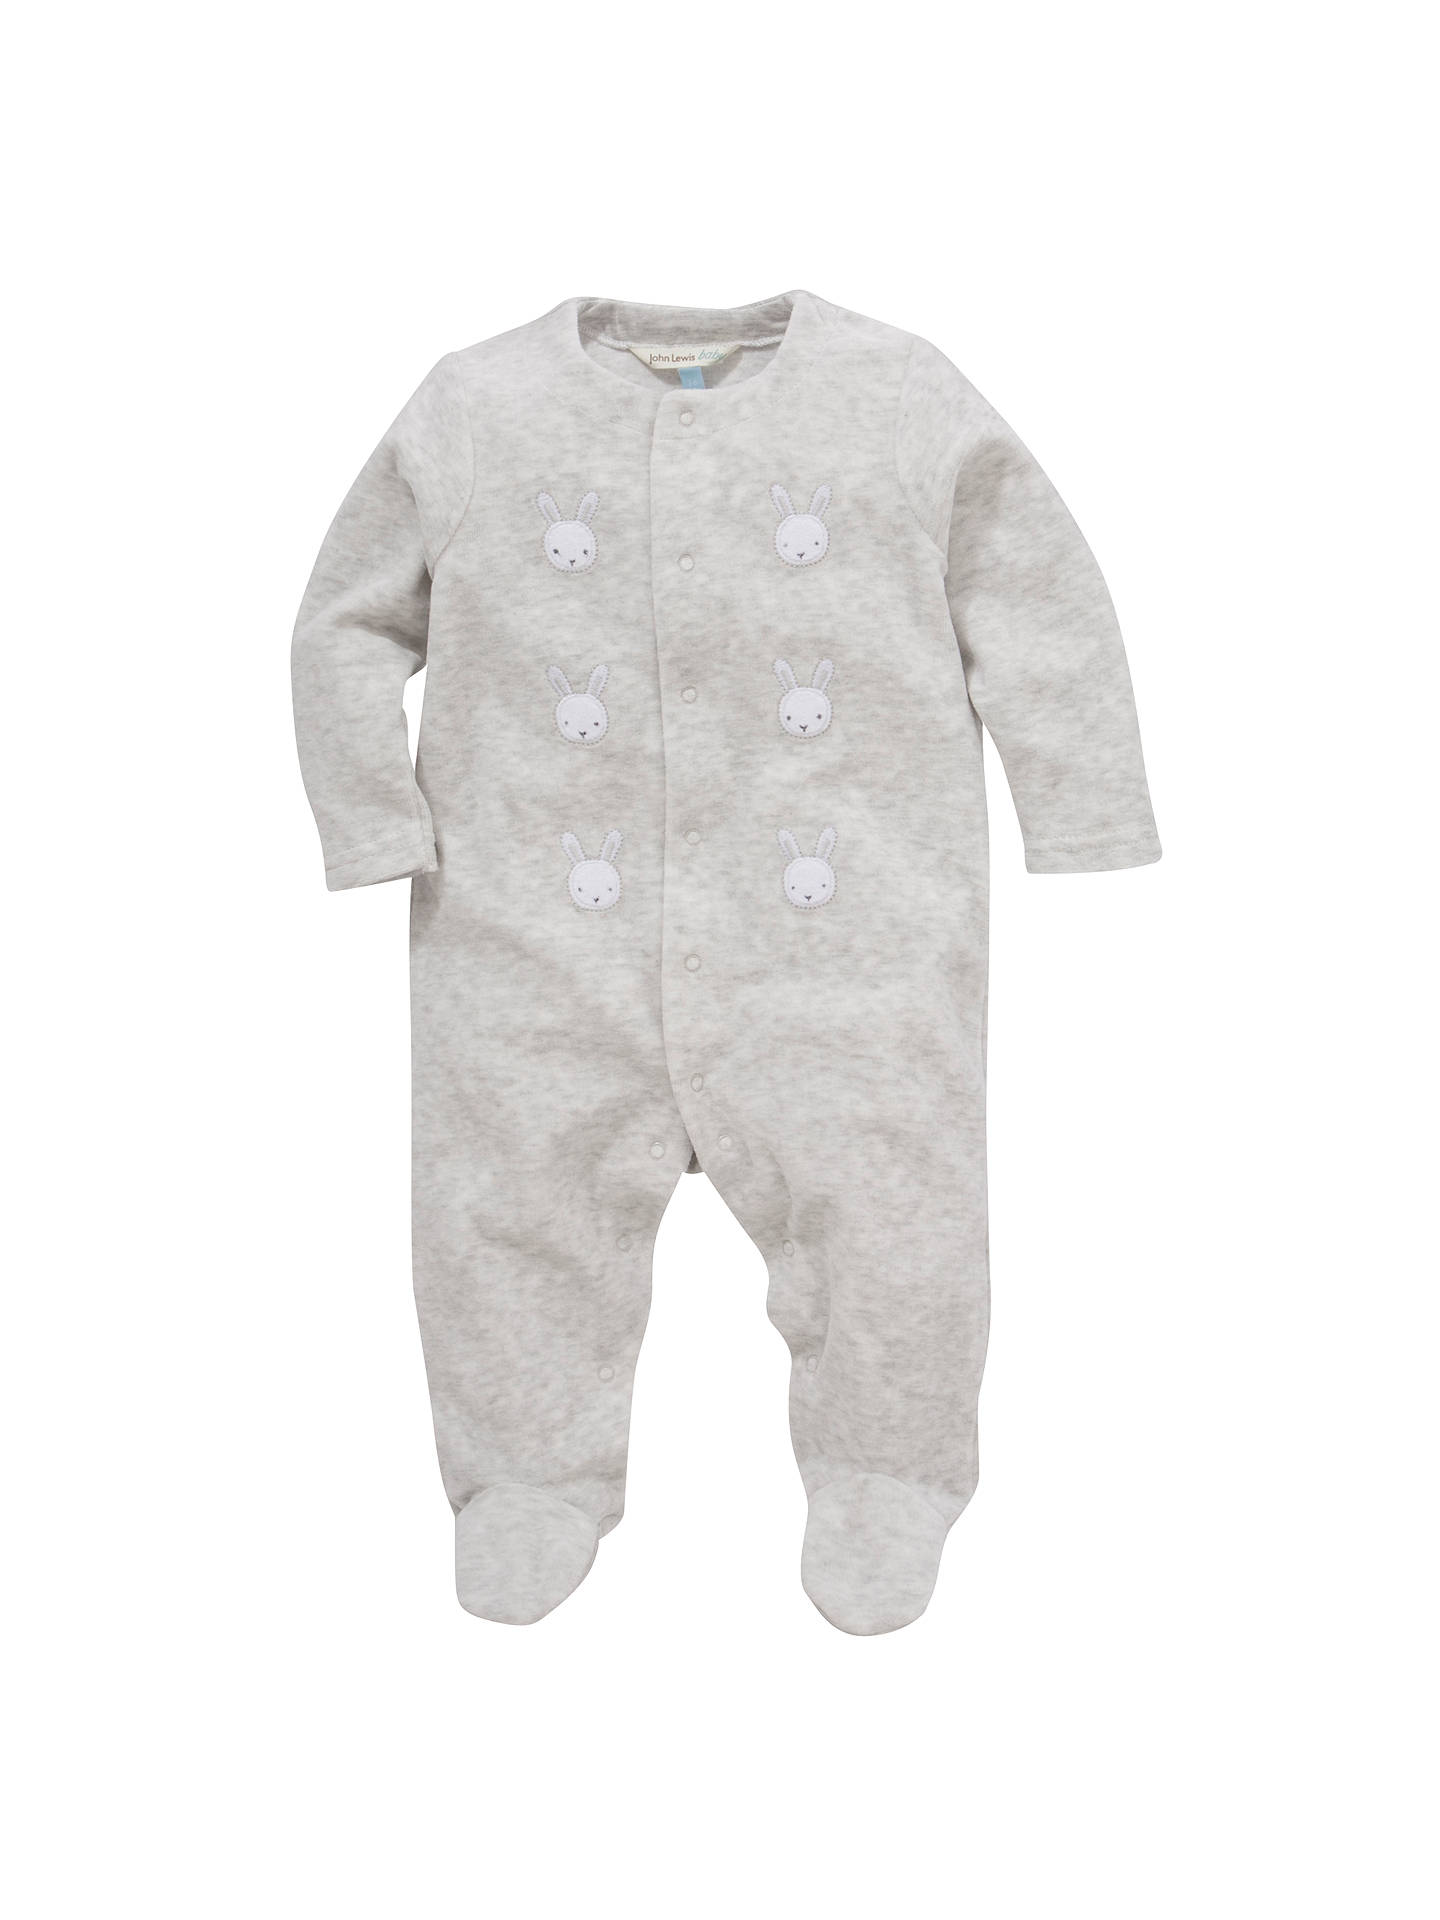 BuyJohn Lewis & Partners Baby Bunny Velour Sleepsuit, Grey, Tiny baby Online at johnlewis.com